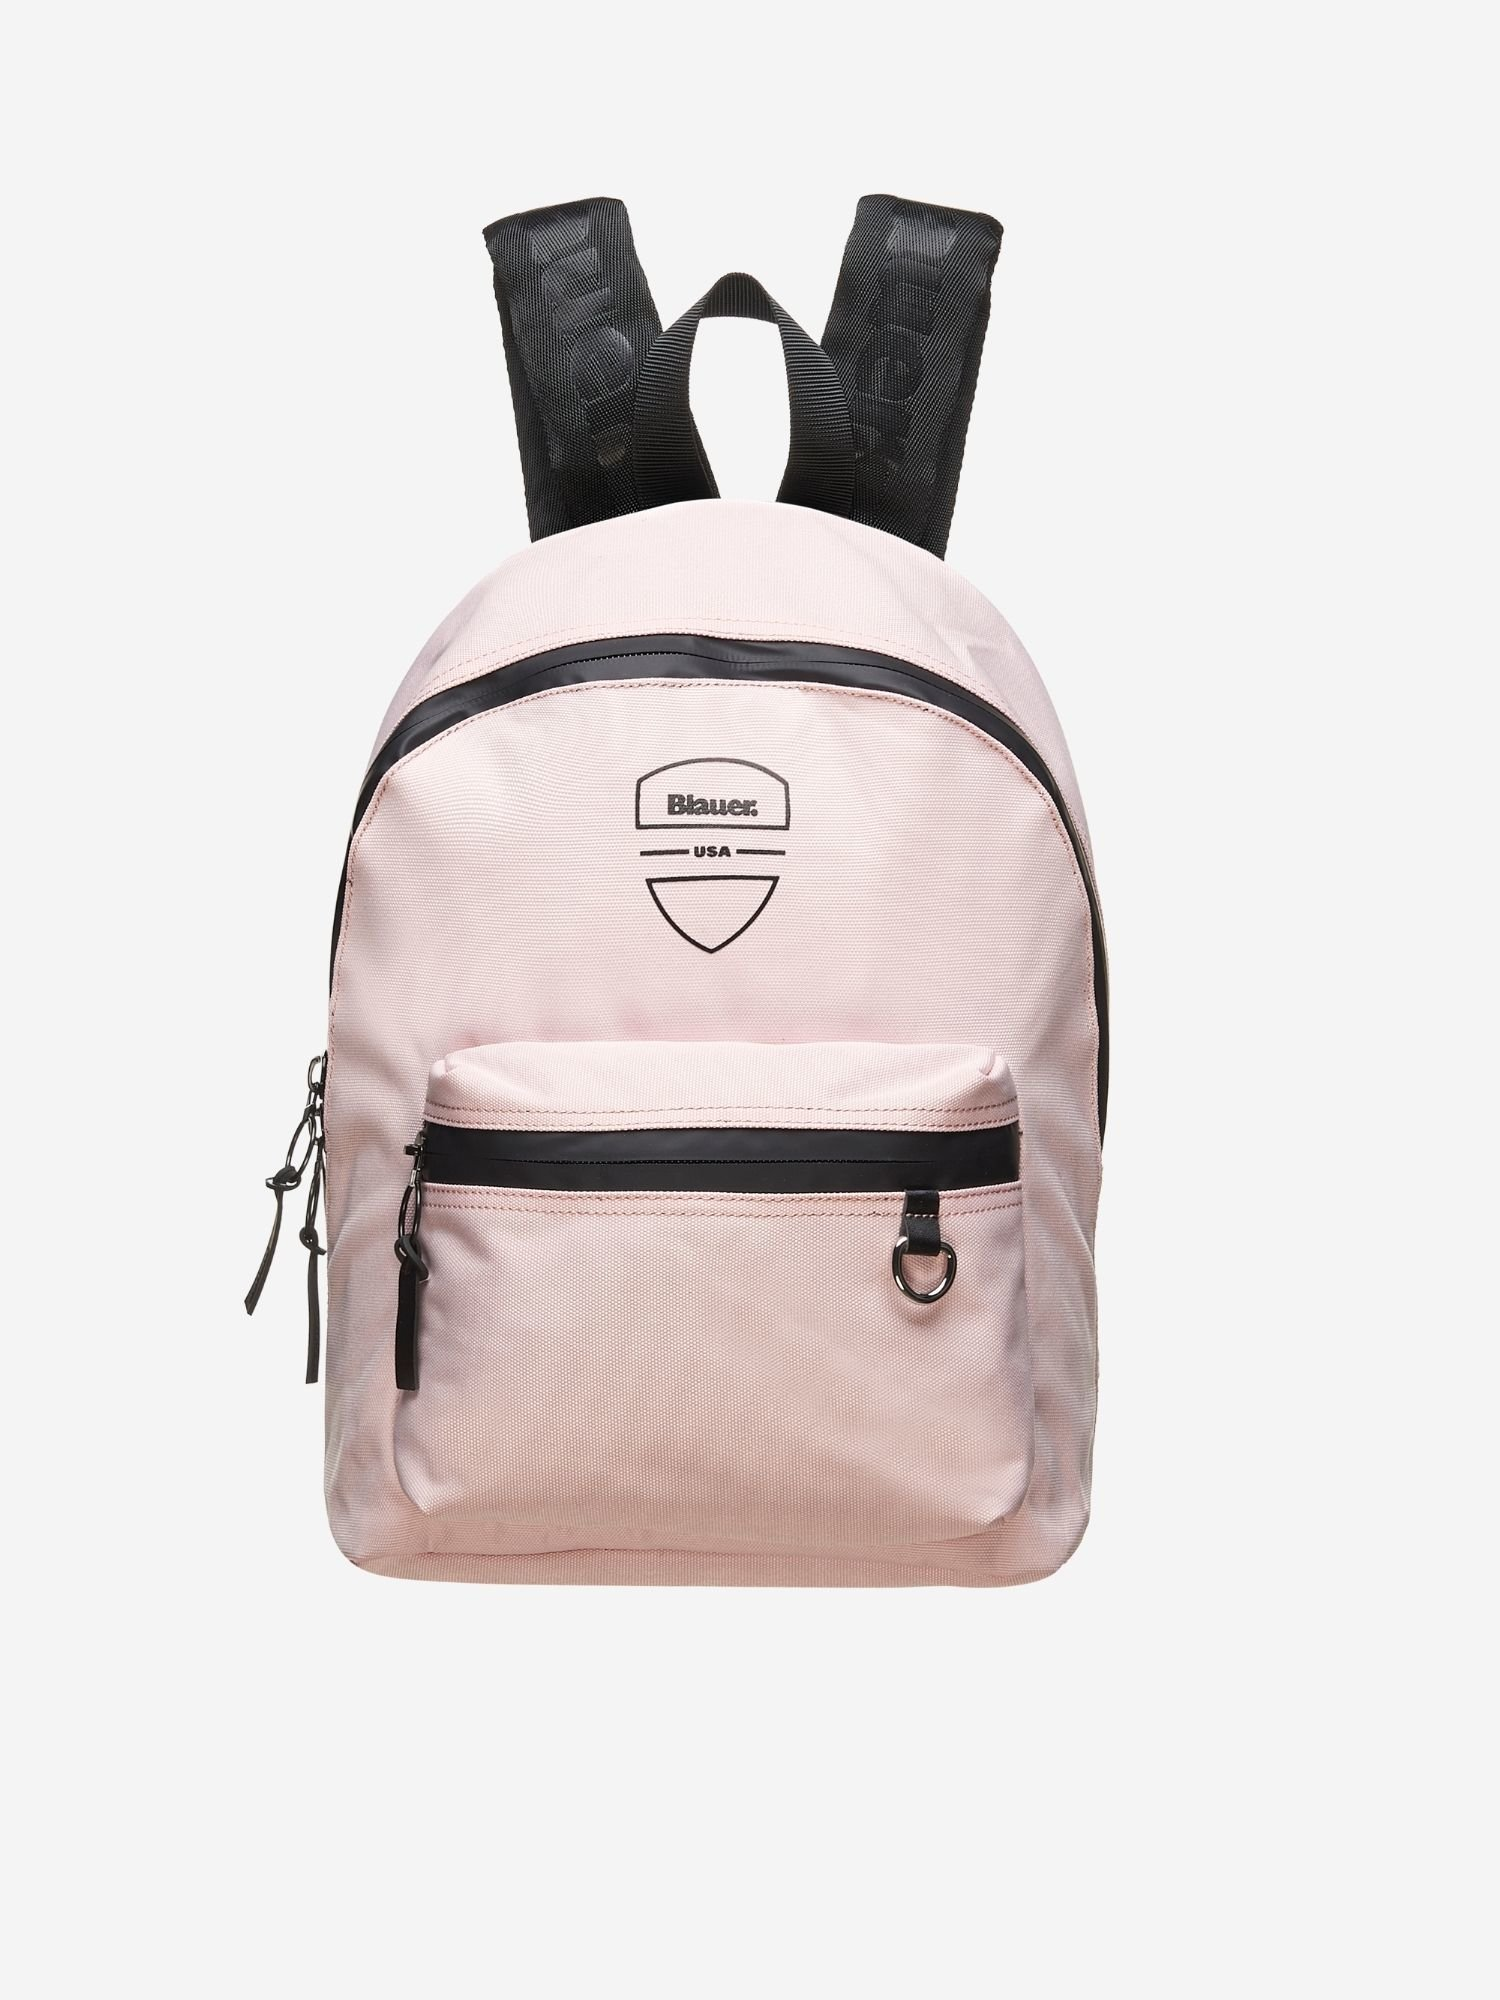 Blauer - HOLLY BACKPACK - Pink Baby - Blauer